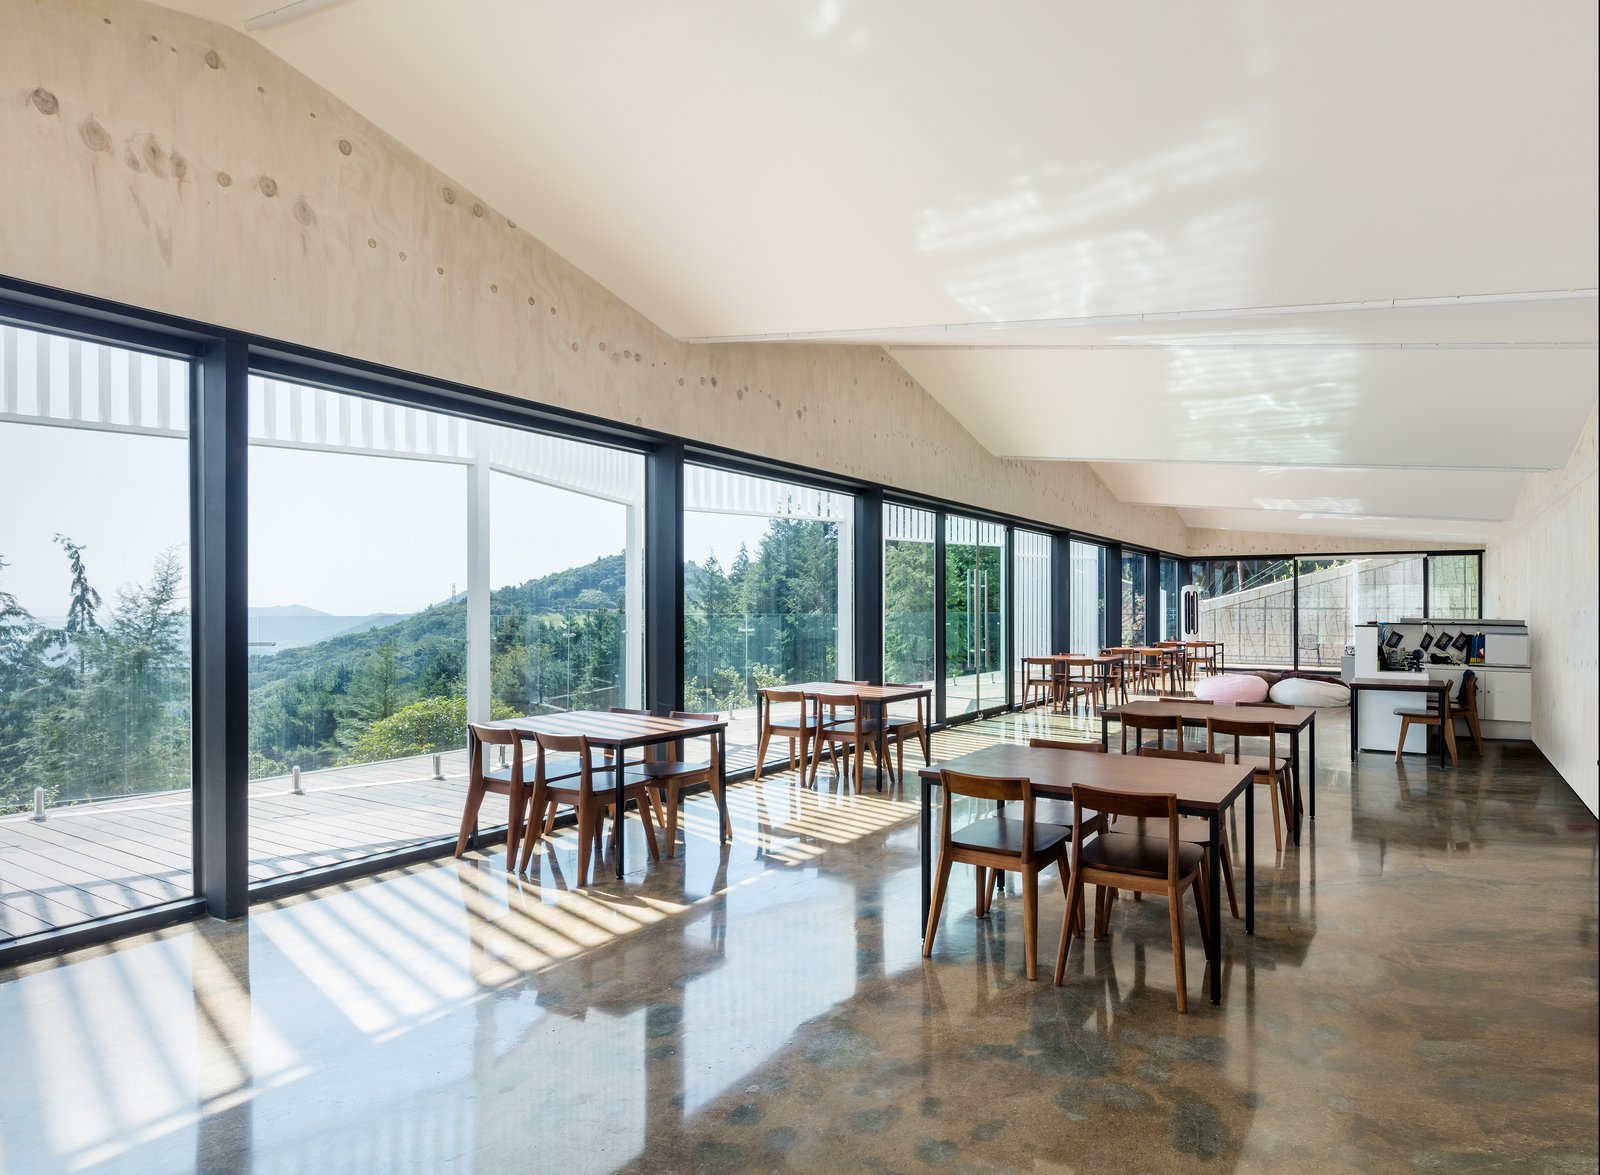 Dining Room, Table, Travertine Floor, and Chair The glazed walls make the dramatic natural scenery the centerpiece of the room.  Photo 7 of 7 in Colorful Glamping Pods Dot a Forest in South Korea